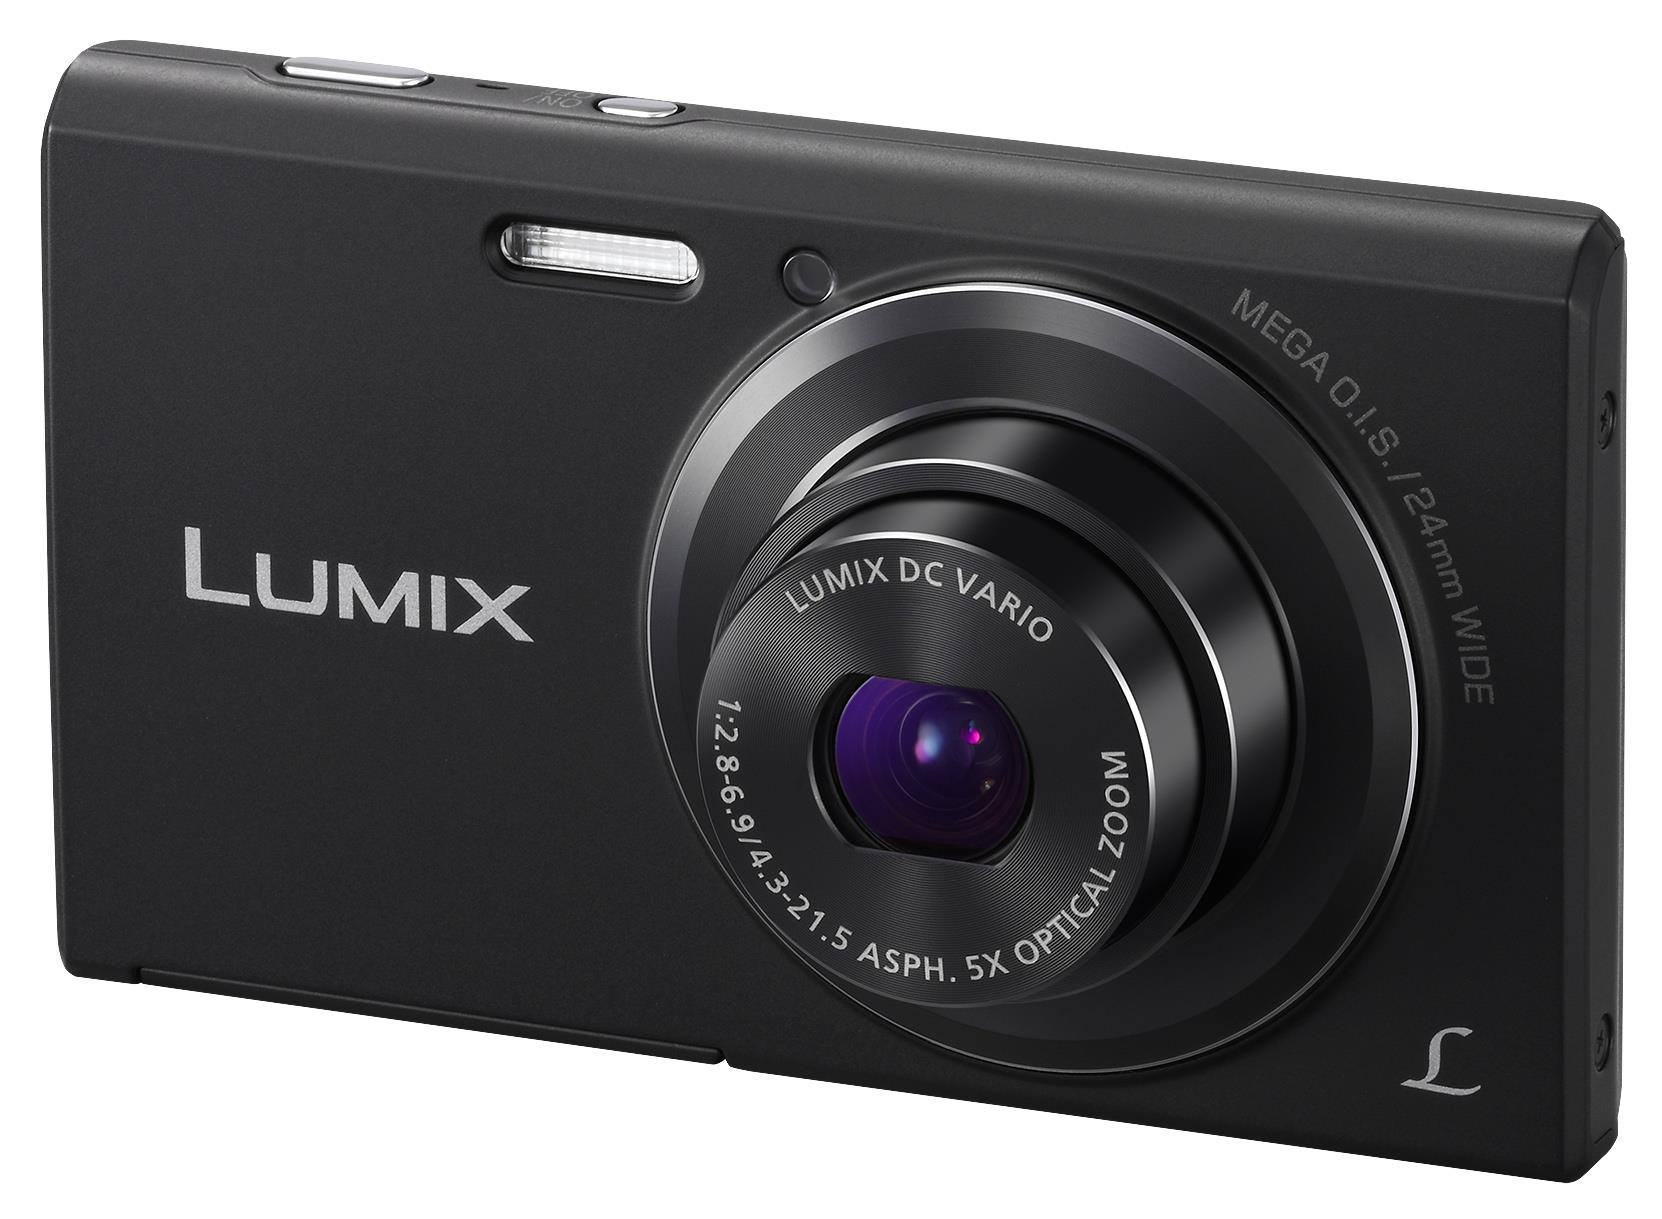 Panasonic Digital DMC-F5 Image